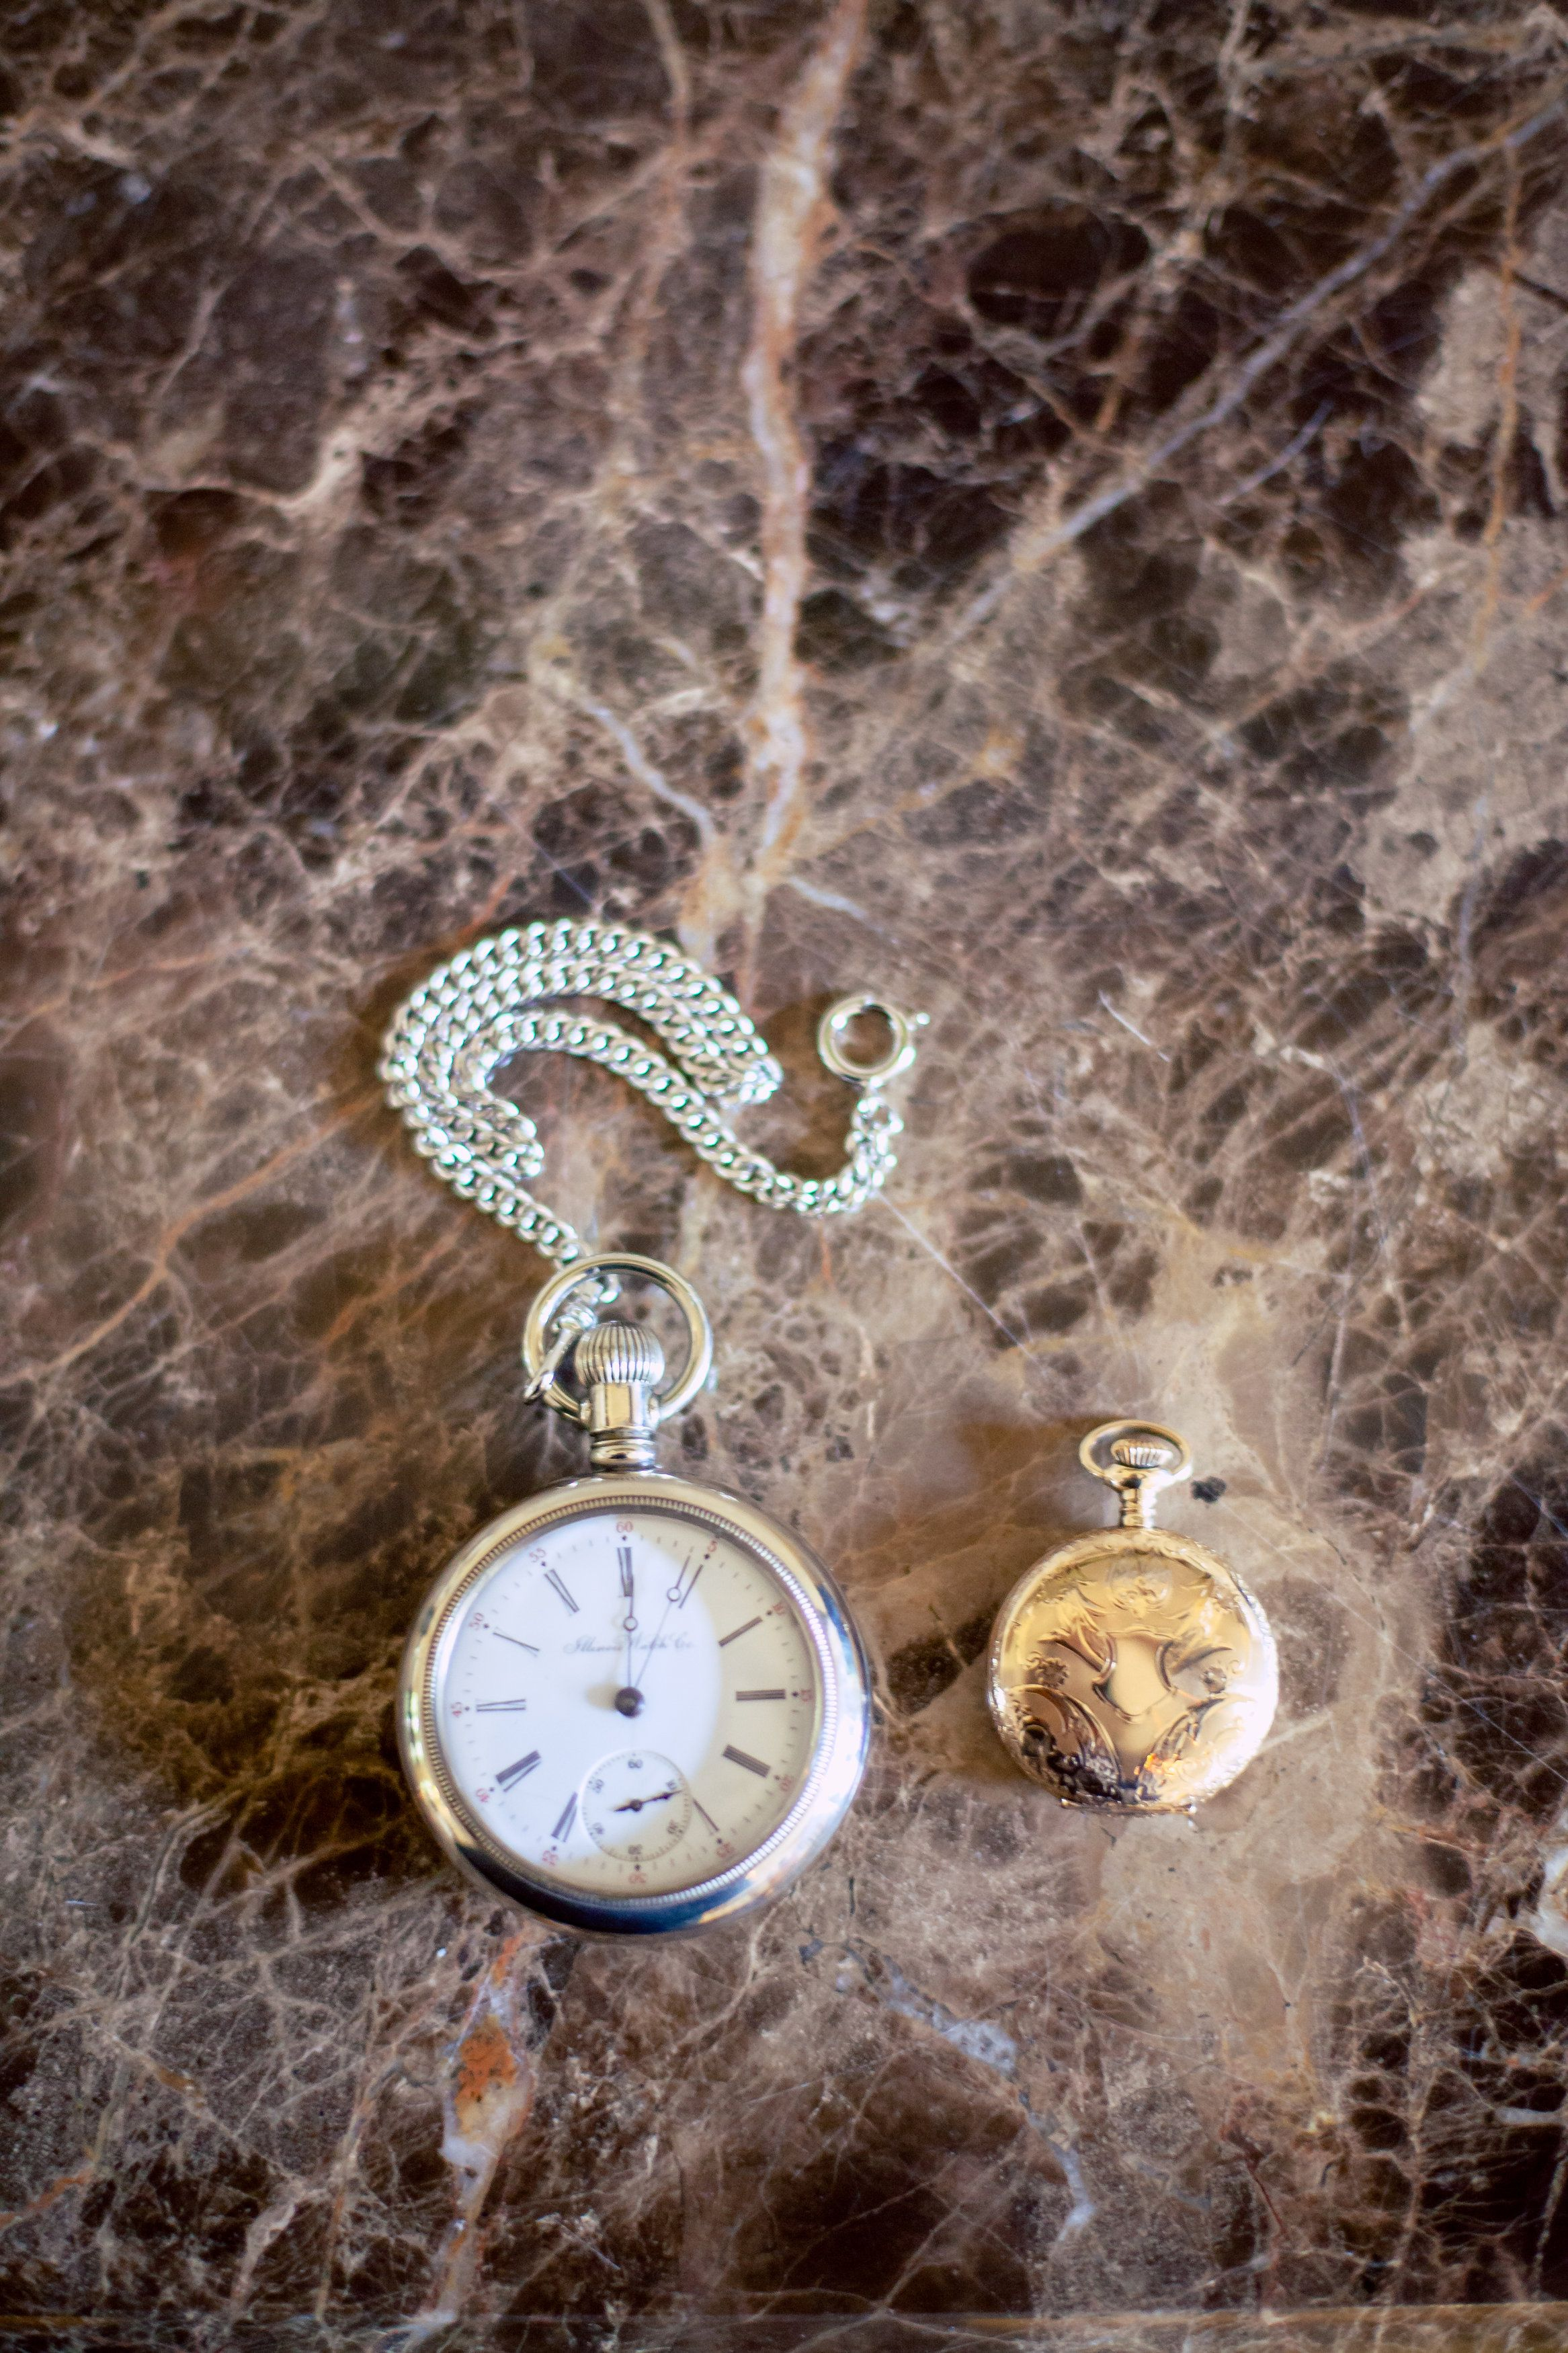 classic, elegant watch, time, keeping time, priceless, heirlooms, wedding accessories :: Caryn + Zach's Wedding at the Country Club of the South in Johns Creek, GA :: with Paige